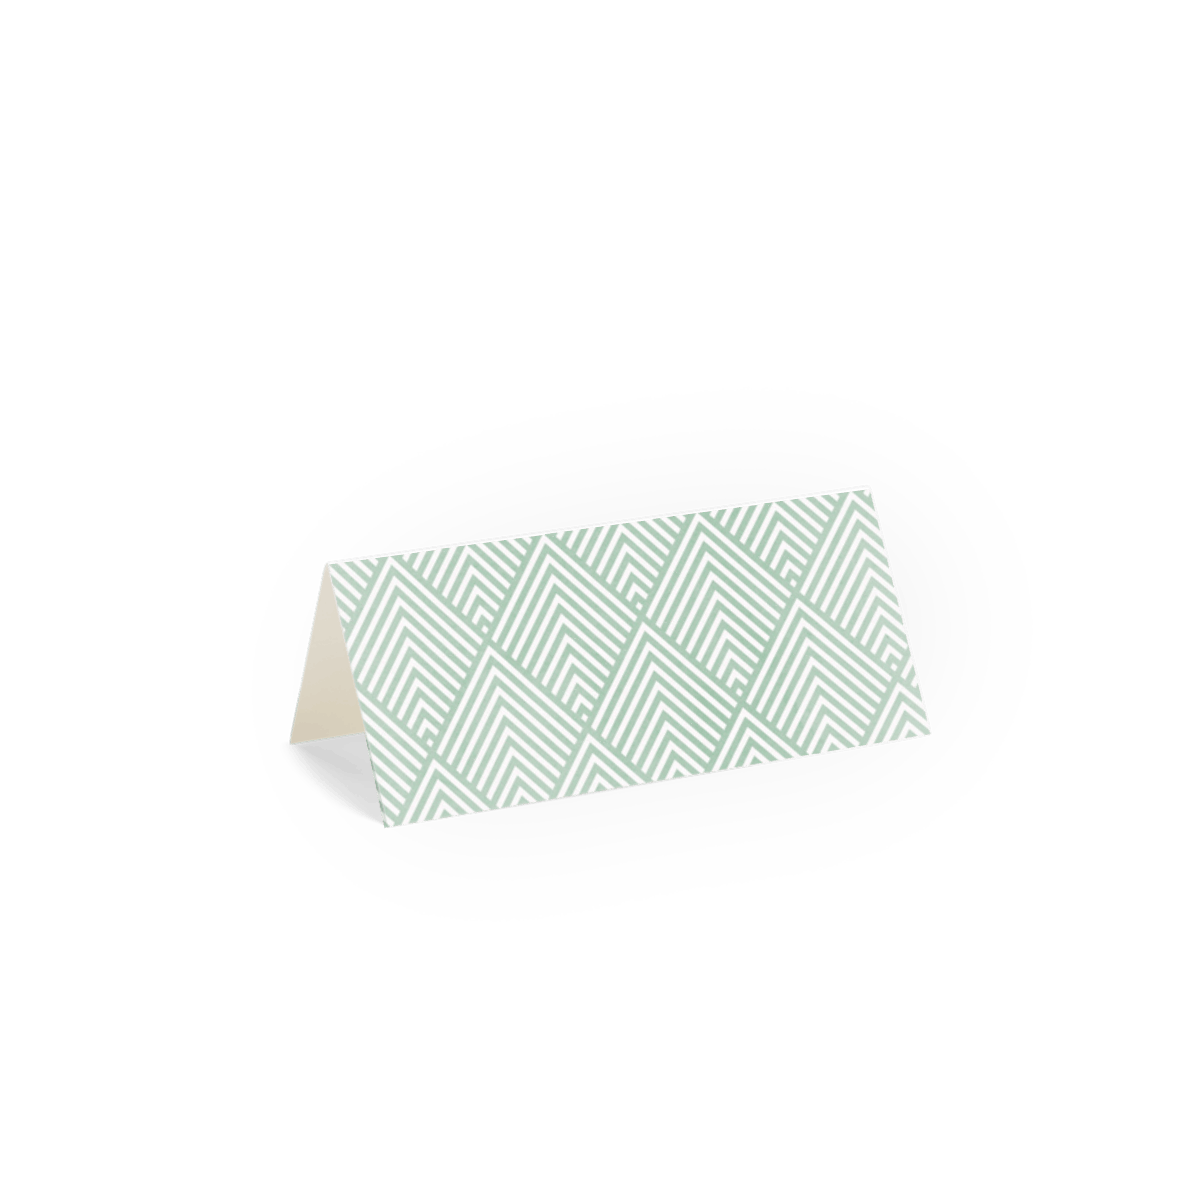 Https%3a%2f%2fwww.papier.com%2fproduct image%2f81603%2f15%2fgreen diamonds 19616 arriere 1561981853.png?ixlib=rb 1.1